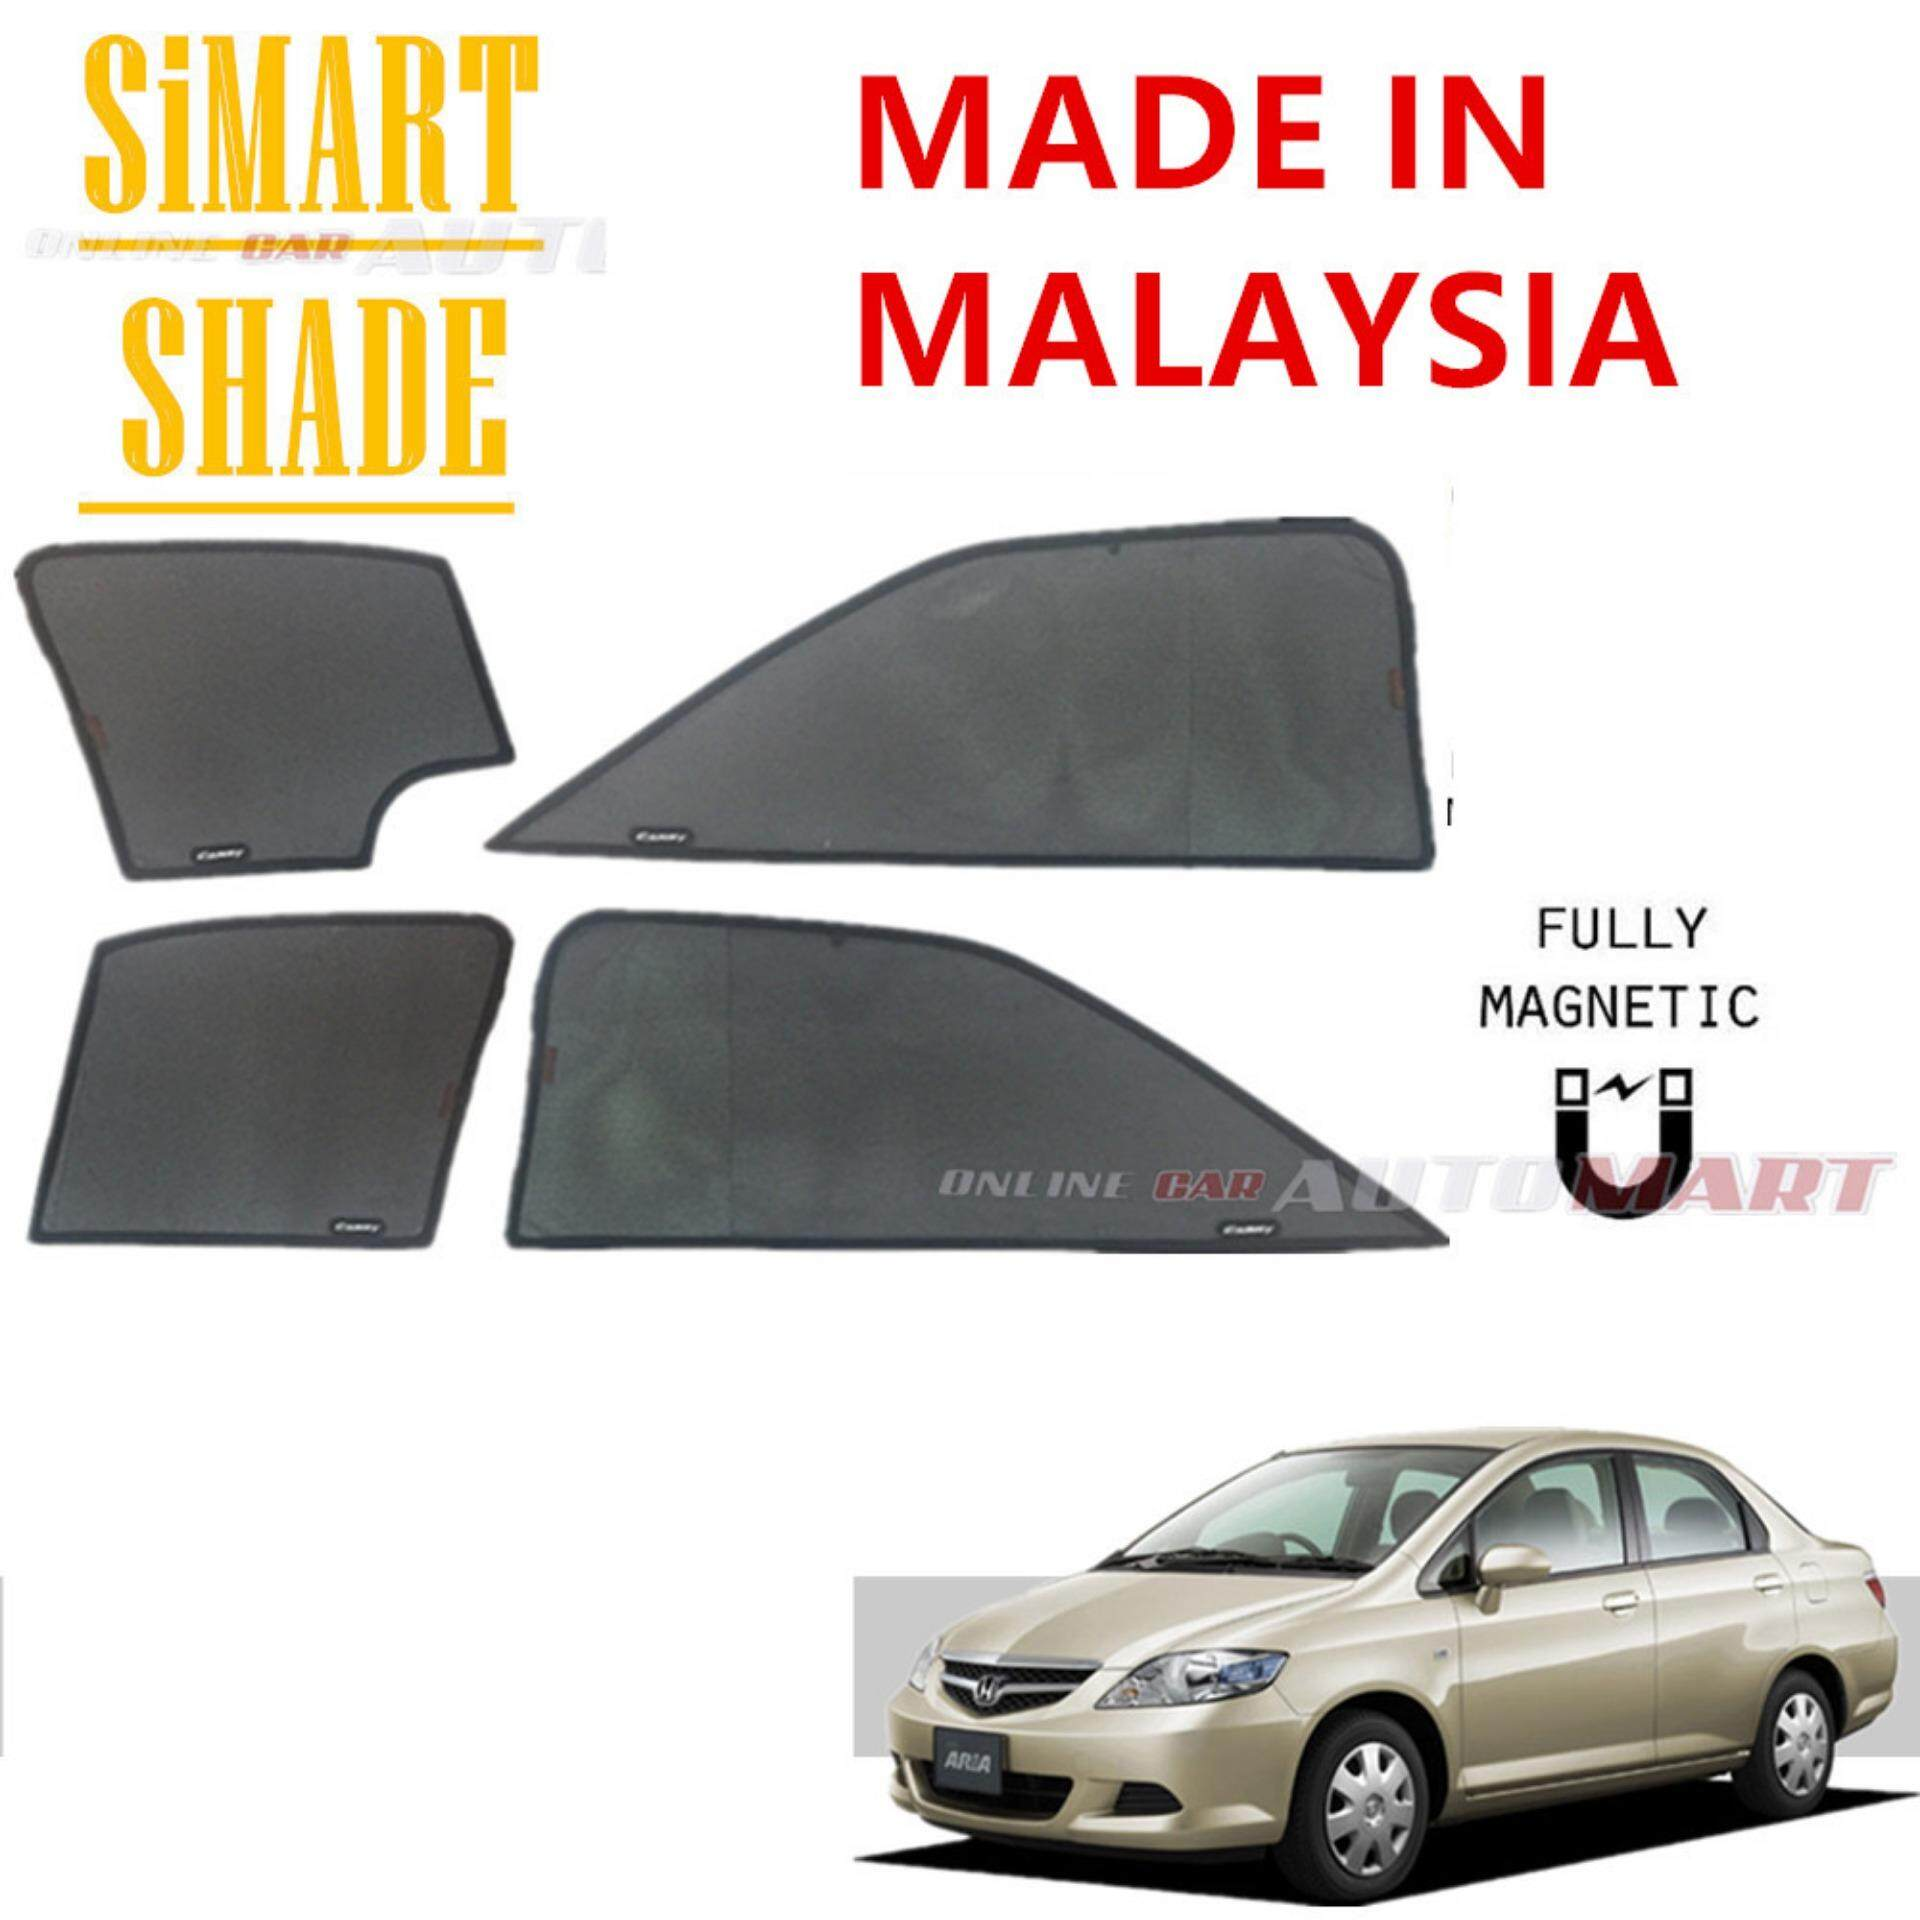 Simart Shade Magnetic Custom Fit OEM Sunshade For Honda City GD9 Yr 2002-2007 4pcs (Made In Malaysia)